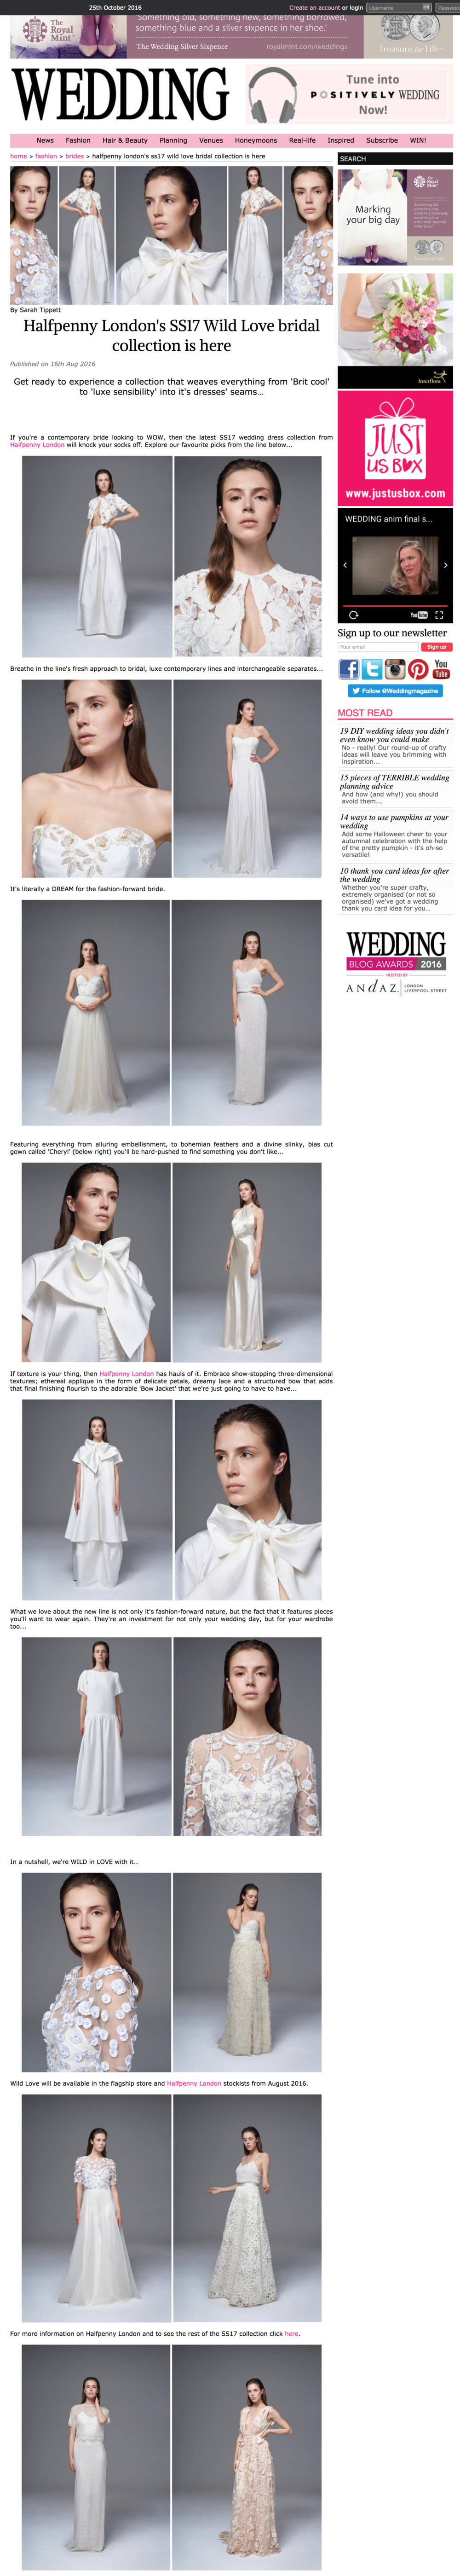 Wedding Magazine - Halfpenny London s SS17 Wild Love bridal collection is here.png